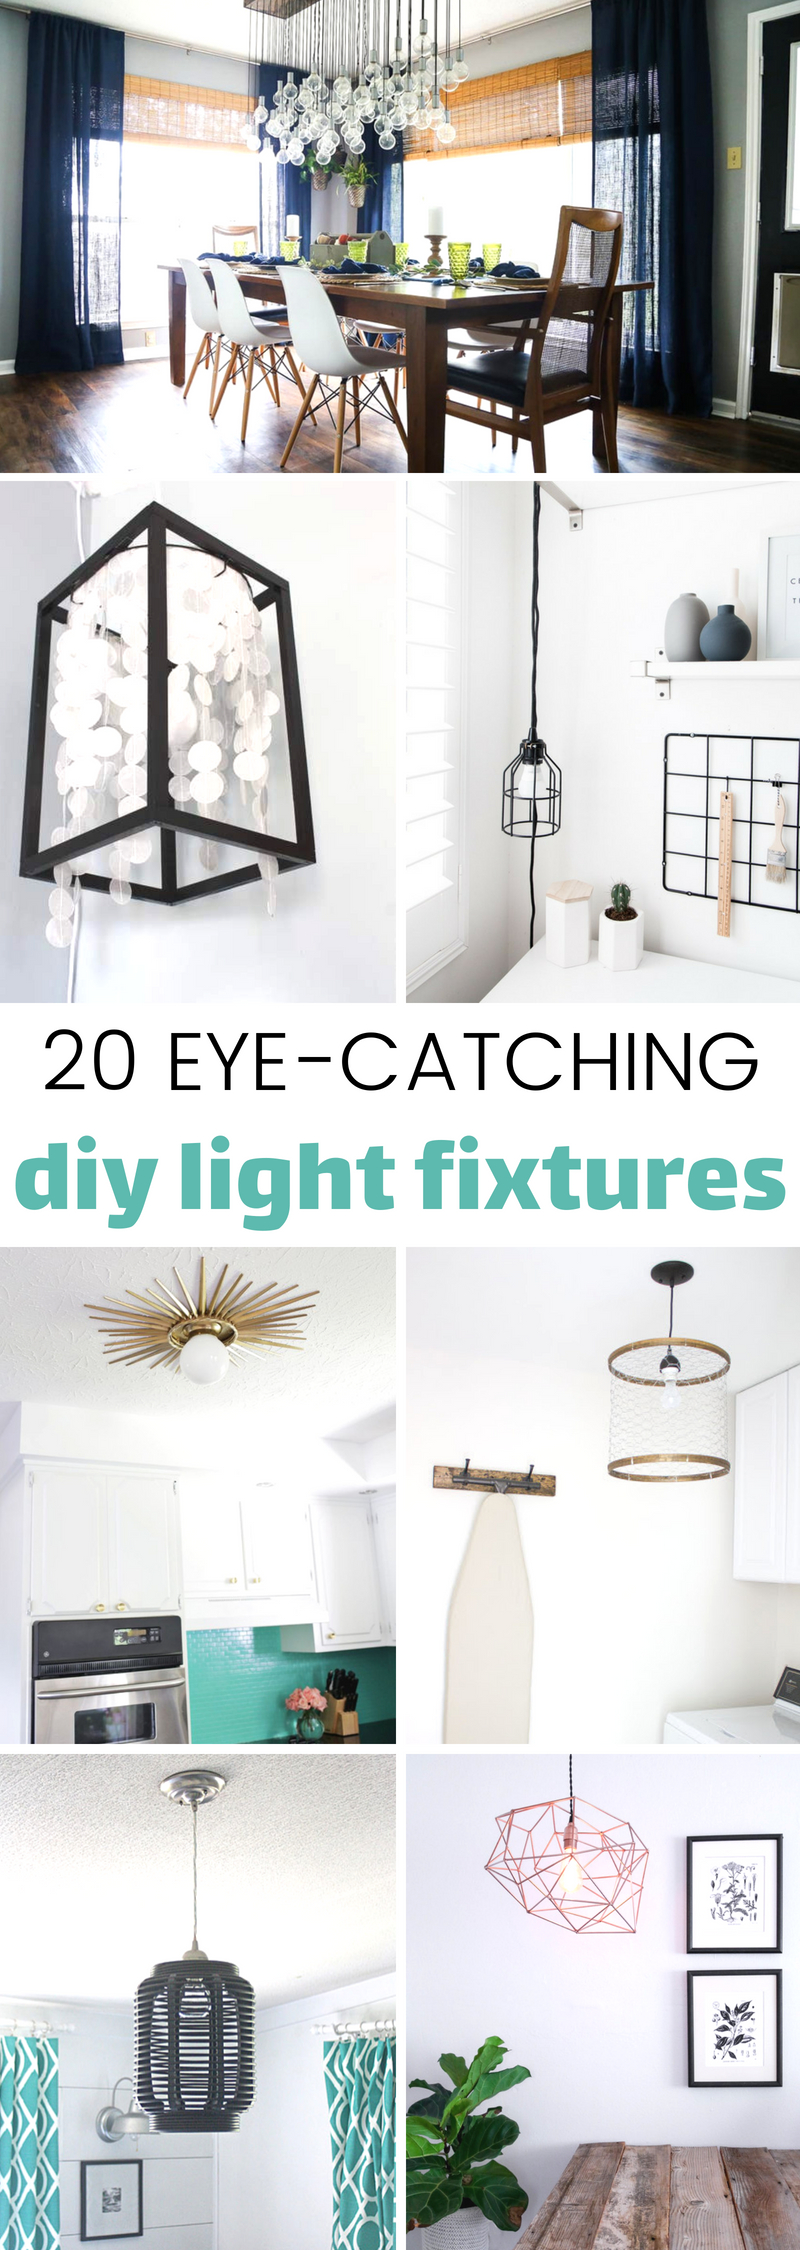 DIY Light Fixtures